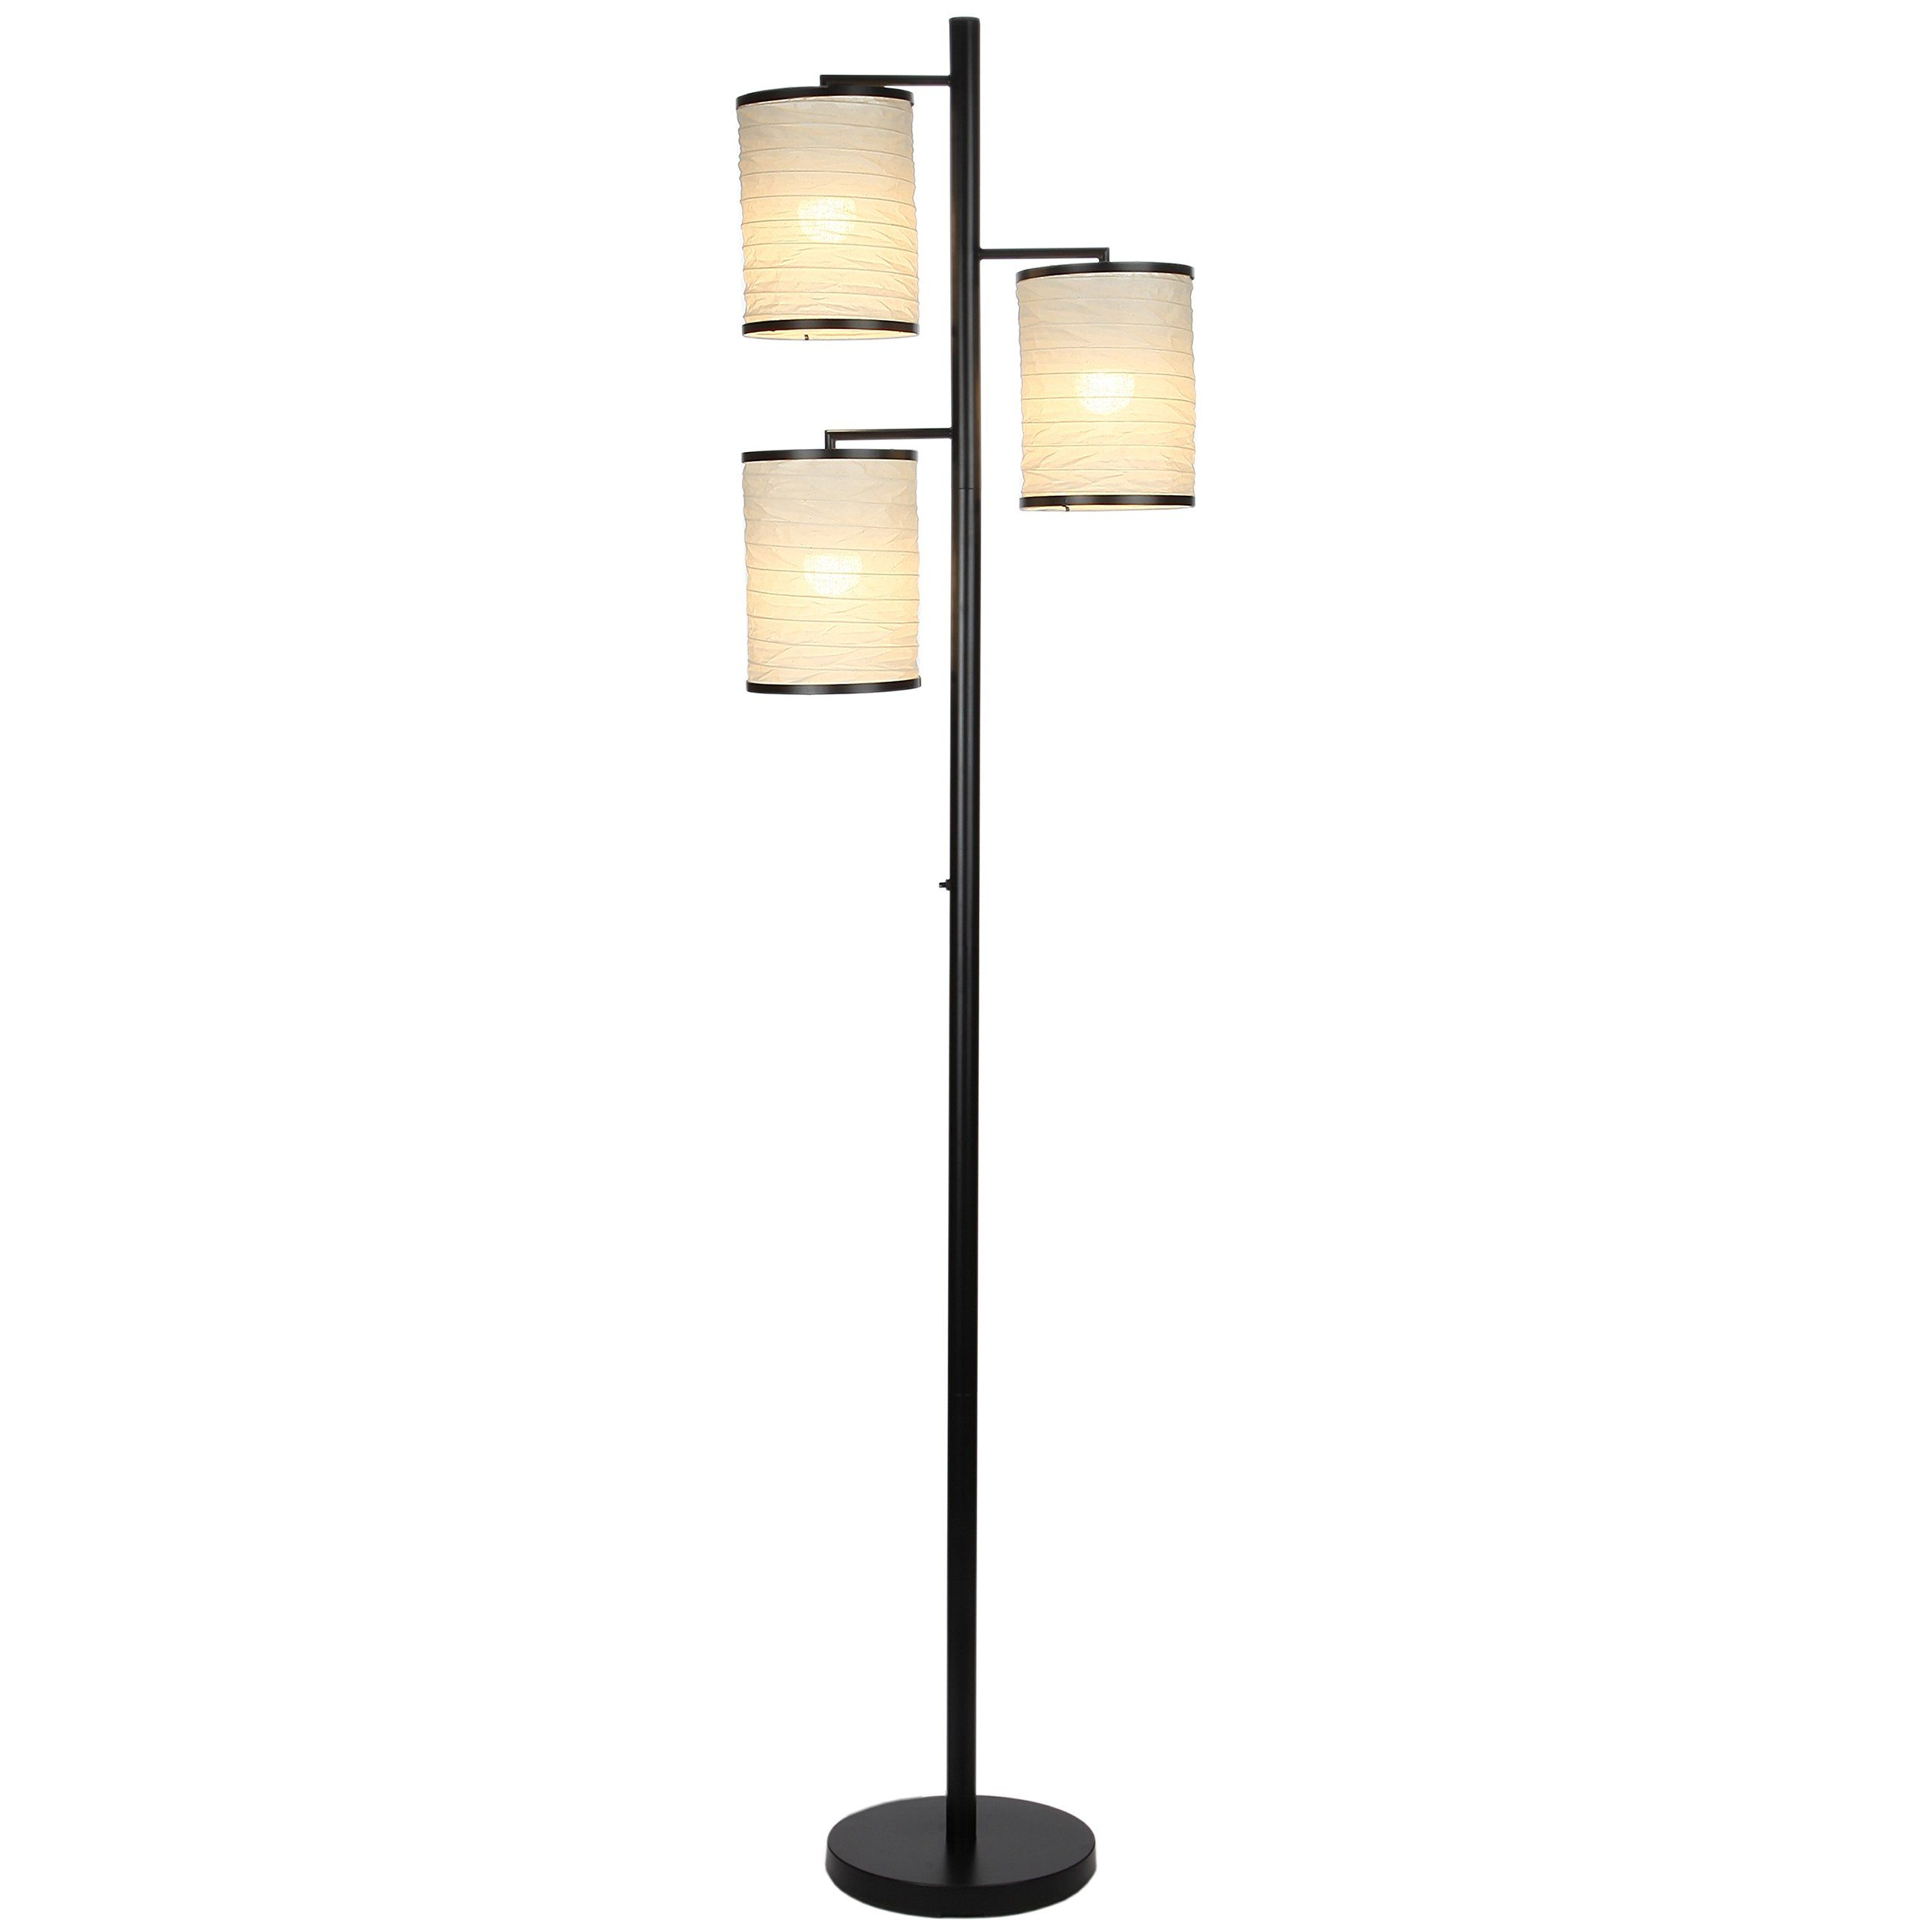 3 Light Floor Lamp Entrancing Brightech Liam Led Floor Lamp  Classy And Stylish 3 Light Led Tree Inspiration